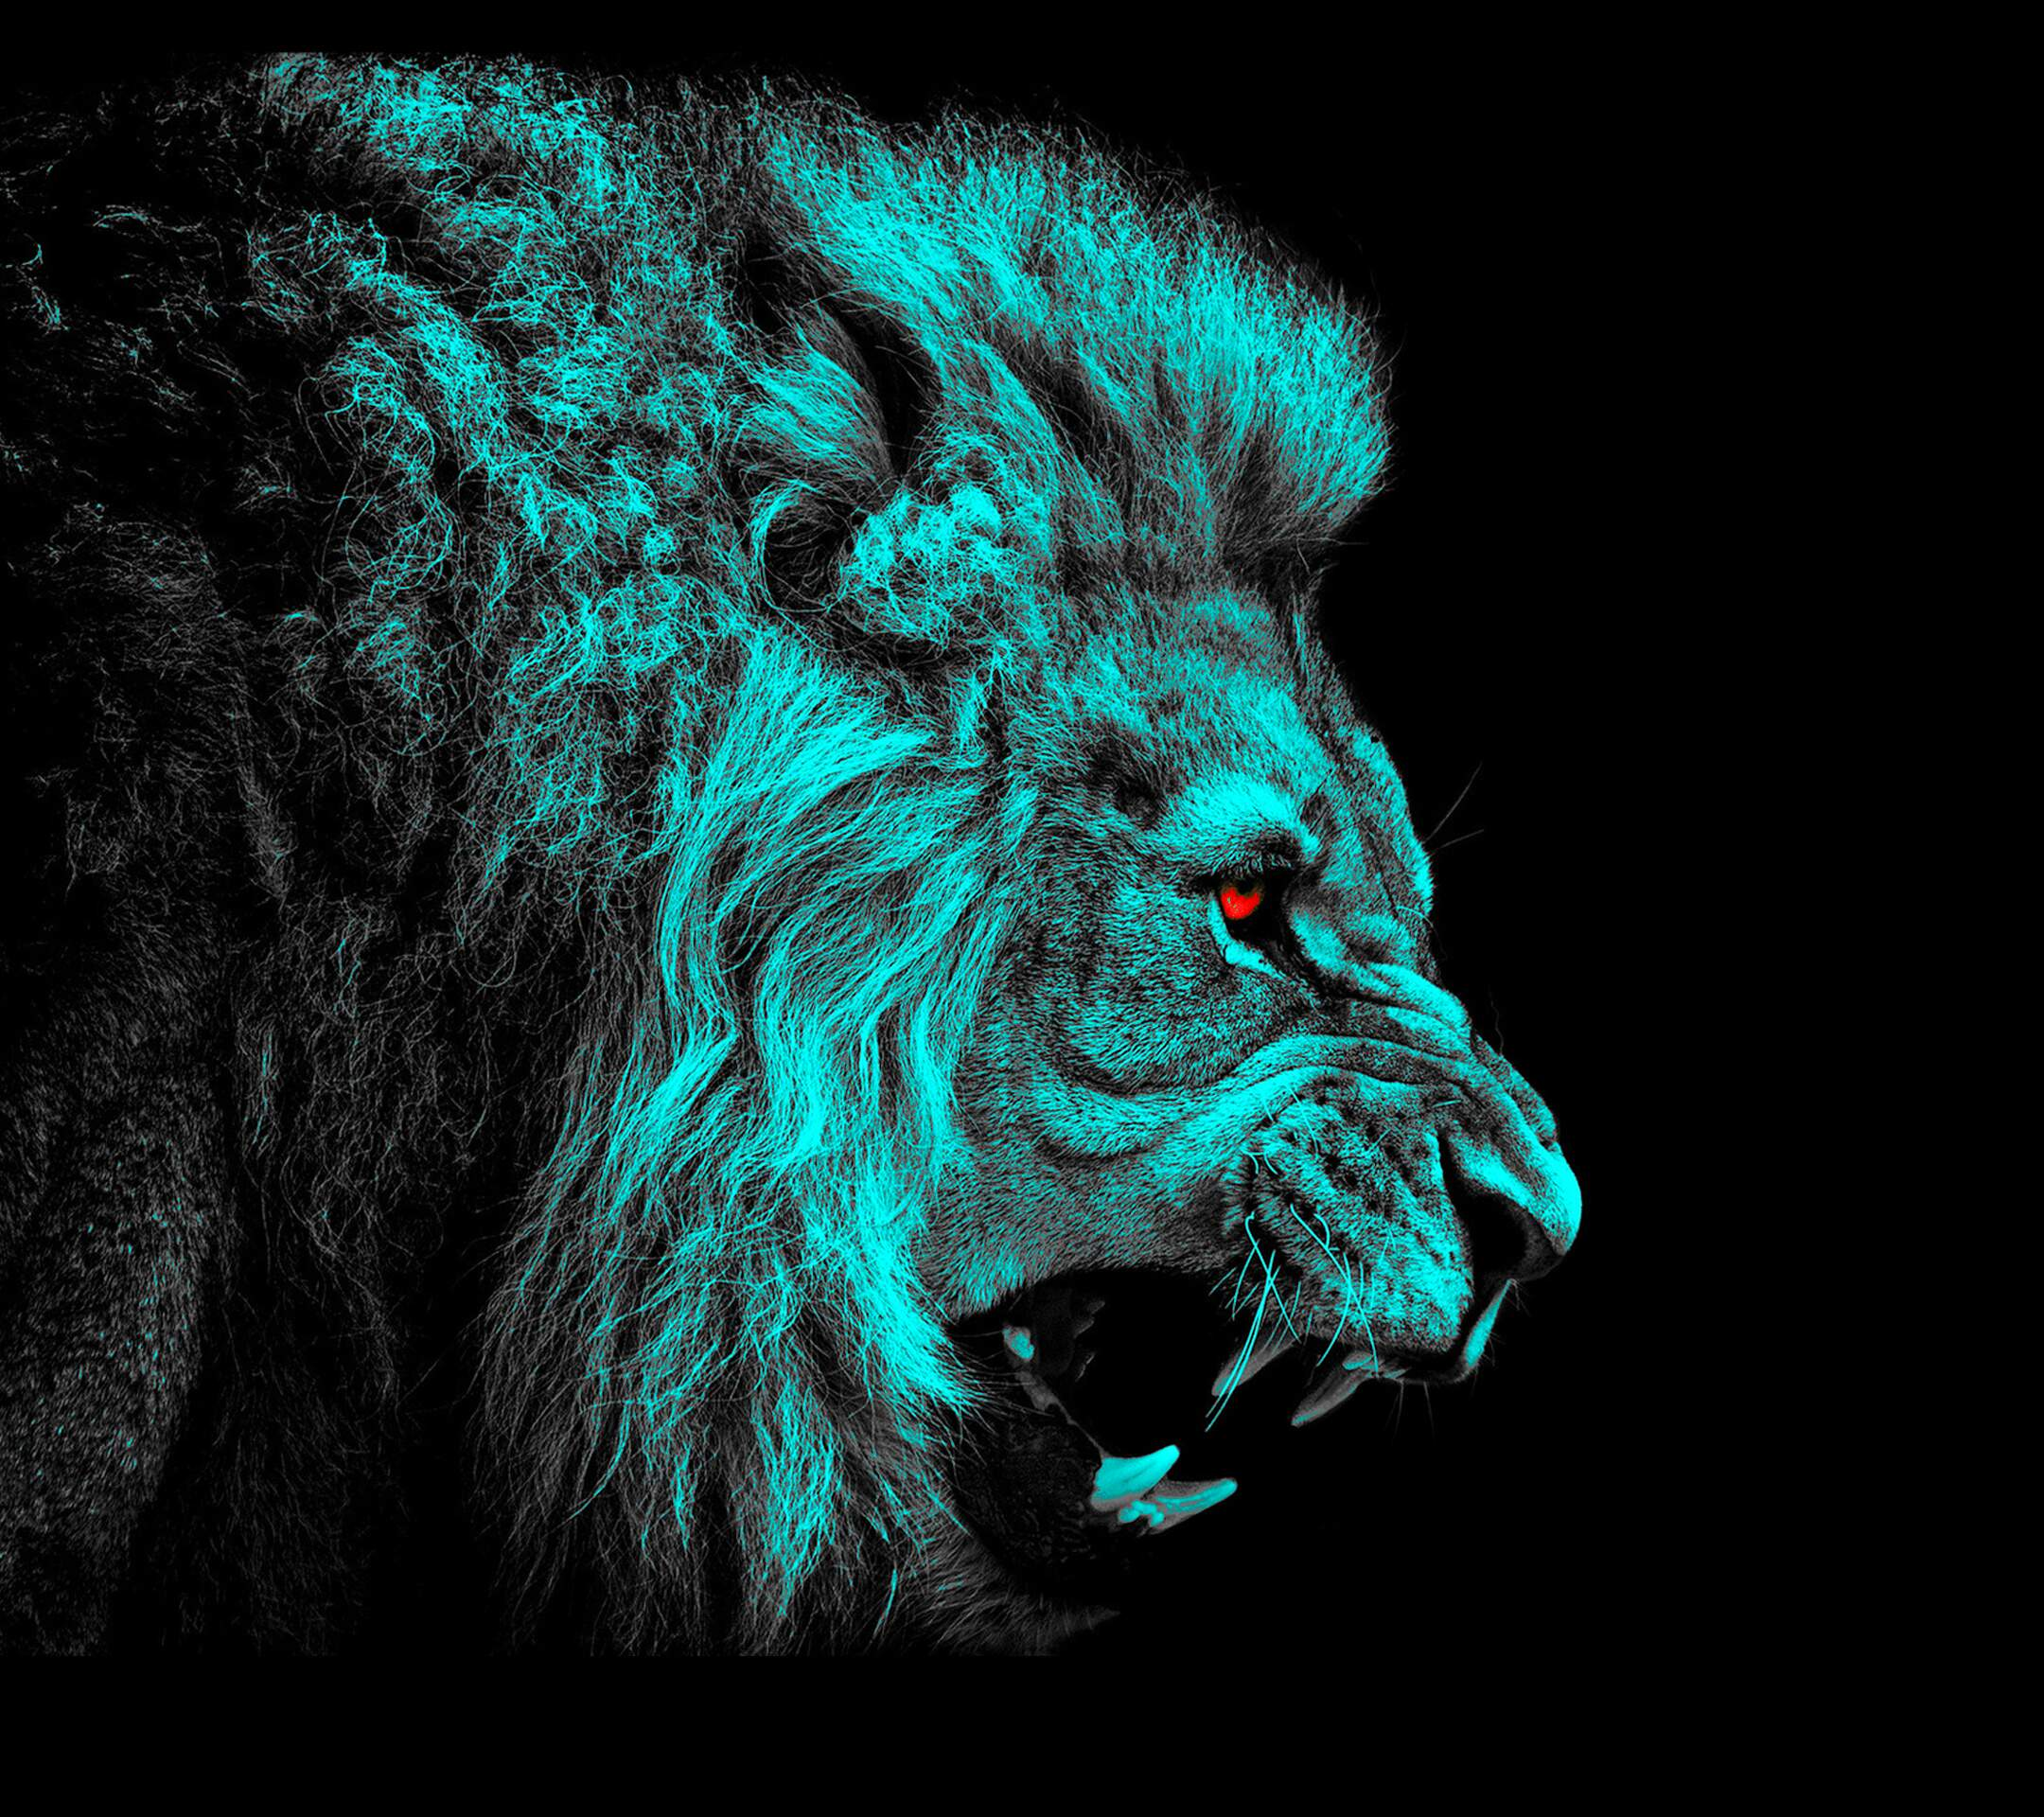 2160x1920 1224 Lion HD Wallpapers | Background Images - Wallpaper Abyss